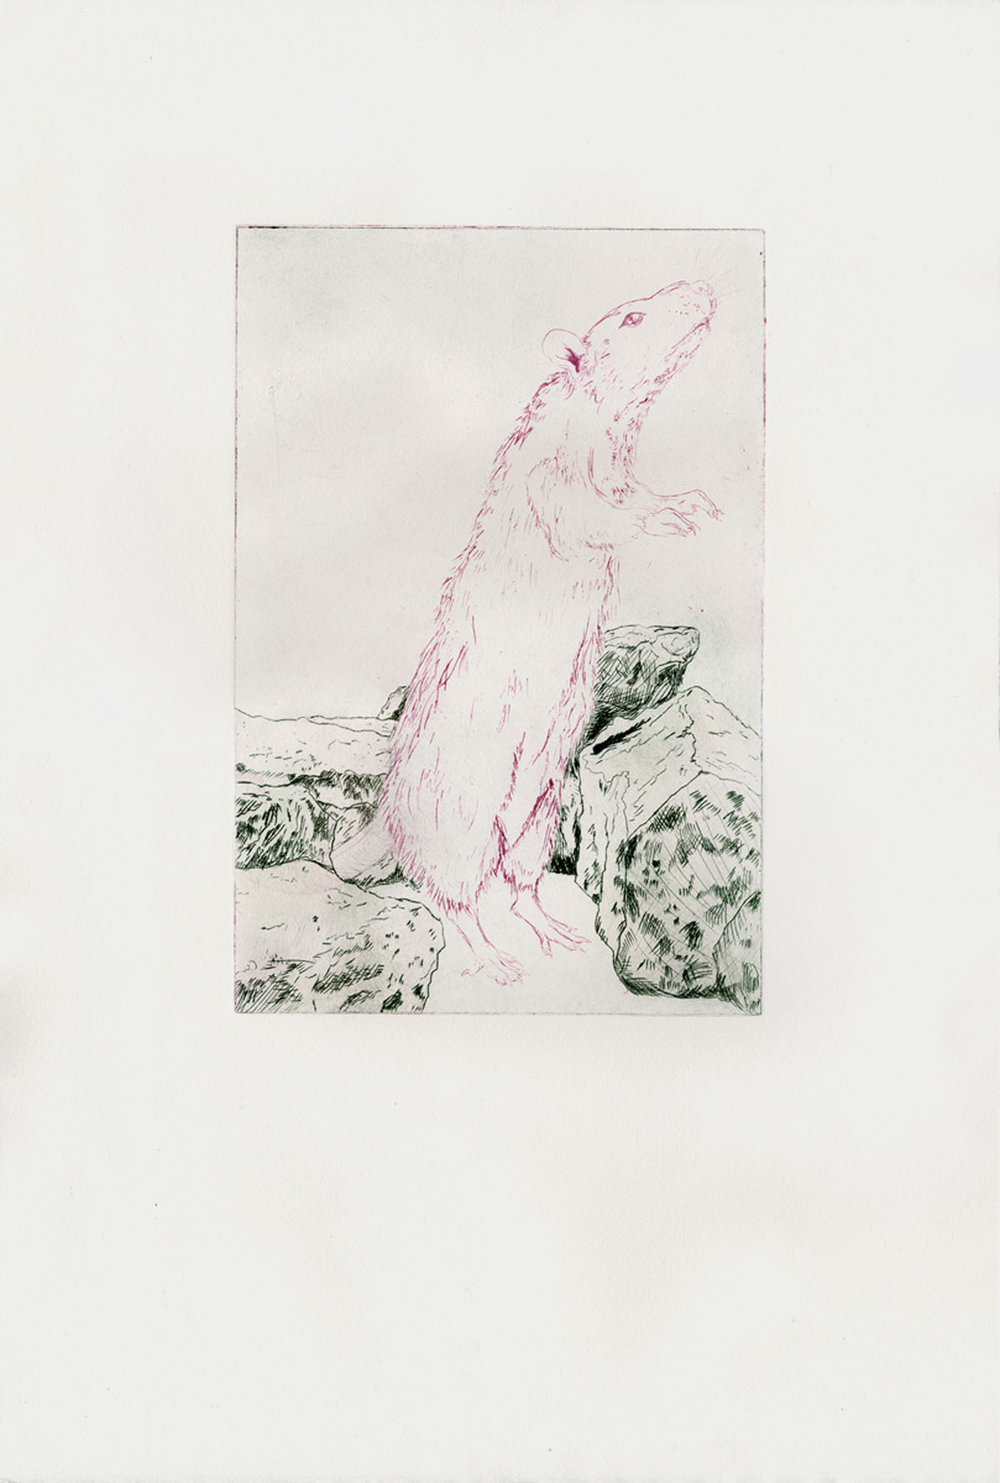 Ashley L. Schick A Scent of Fire and Mortality two color drypoint 15 x 22 inches ASC 001G.jpg